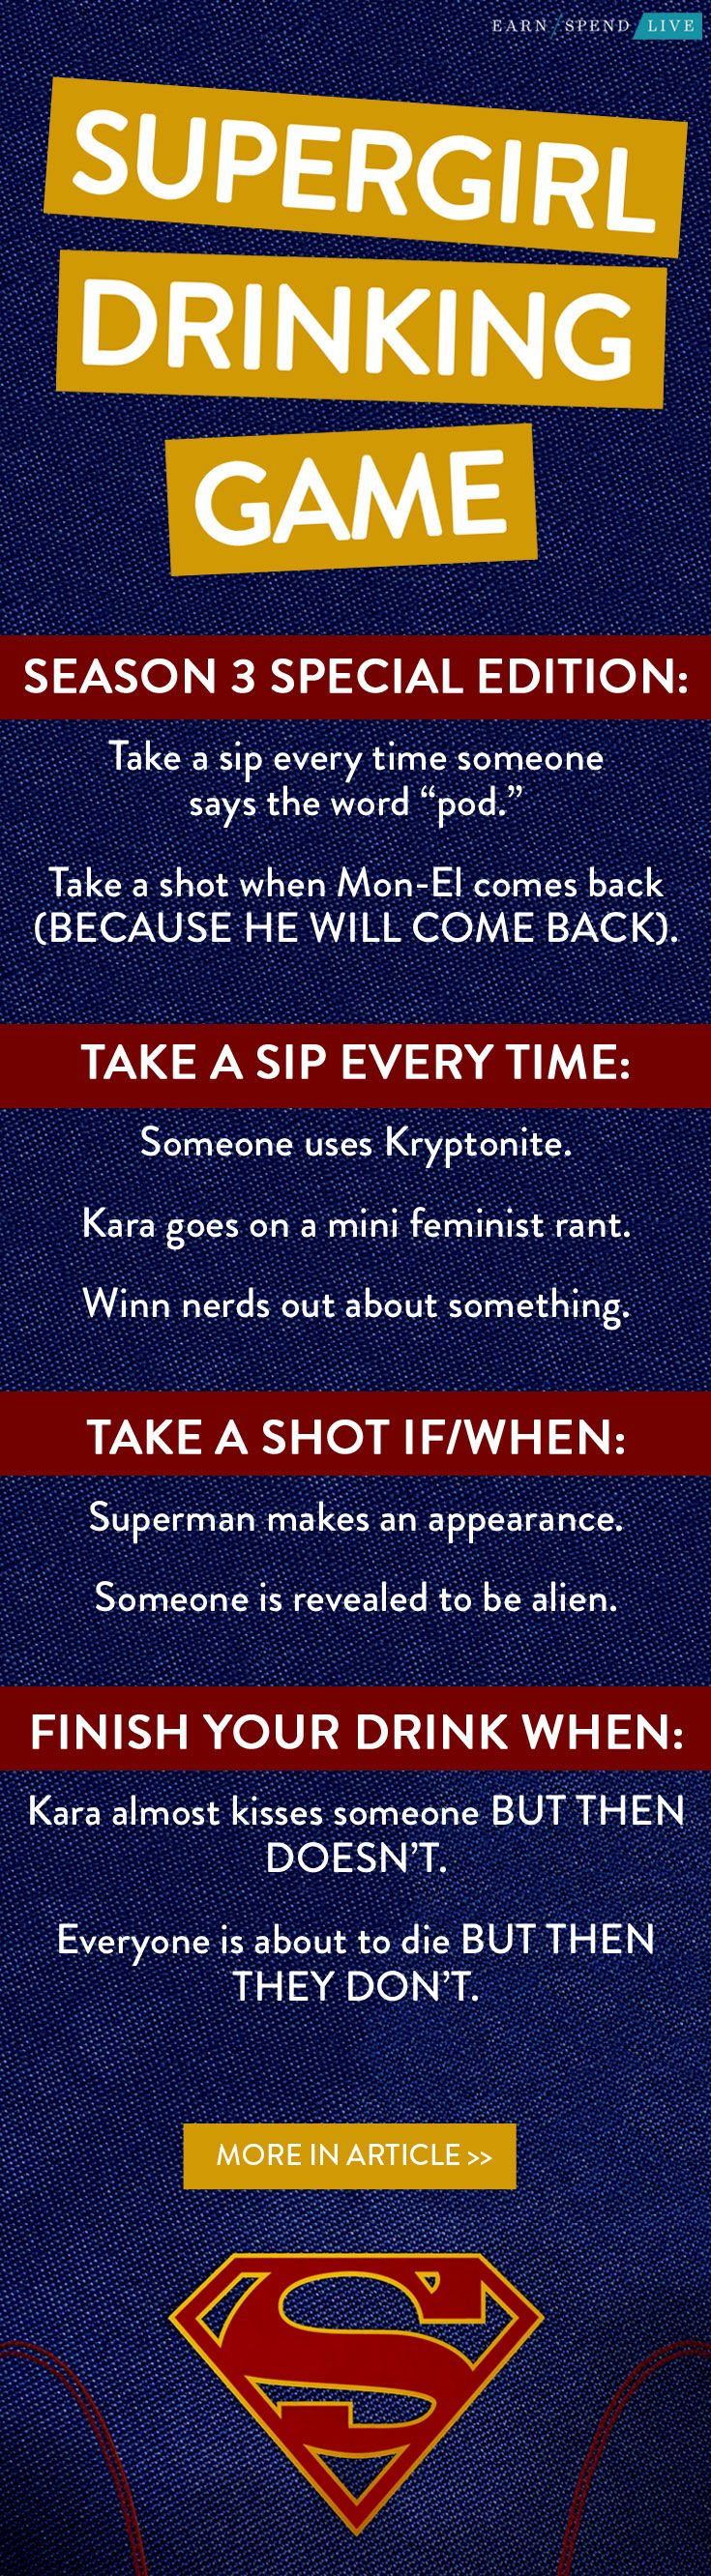 Super Girl Drinking Game, drinking game for SuperGirl, SuperGirl Drinking Game, SuperGirl Season 3